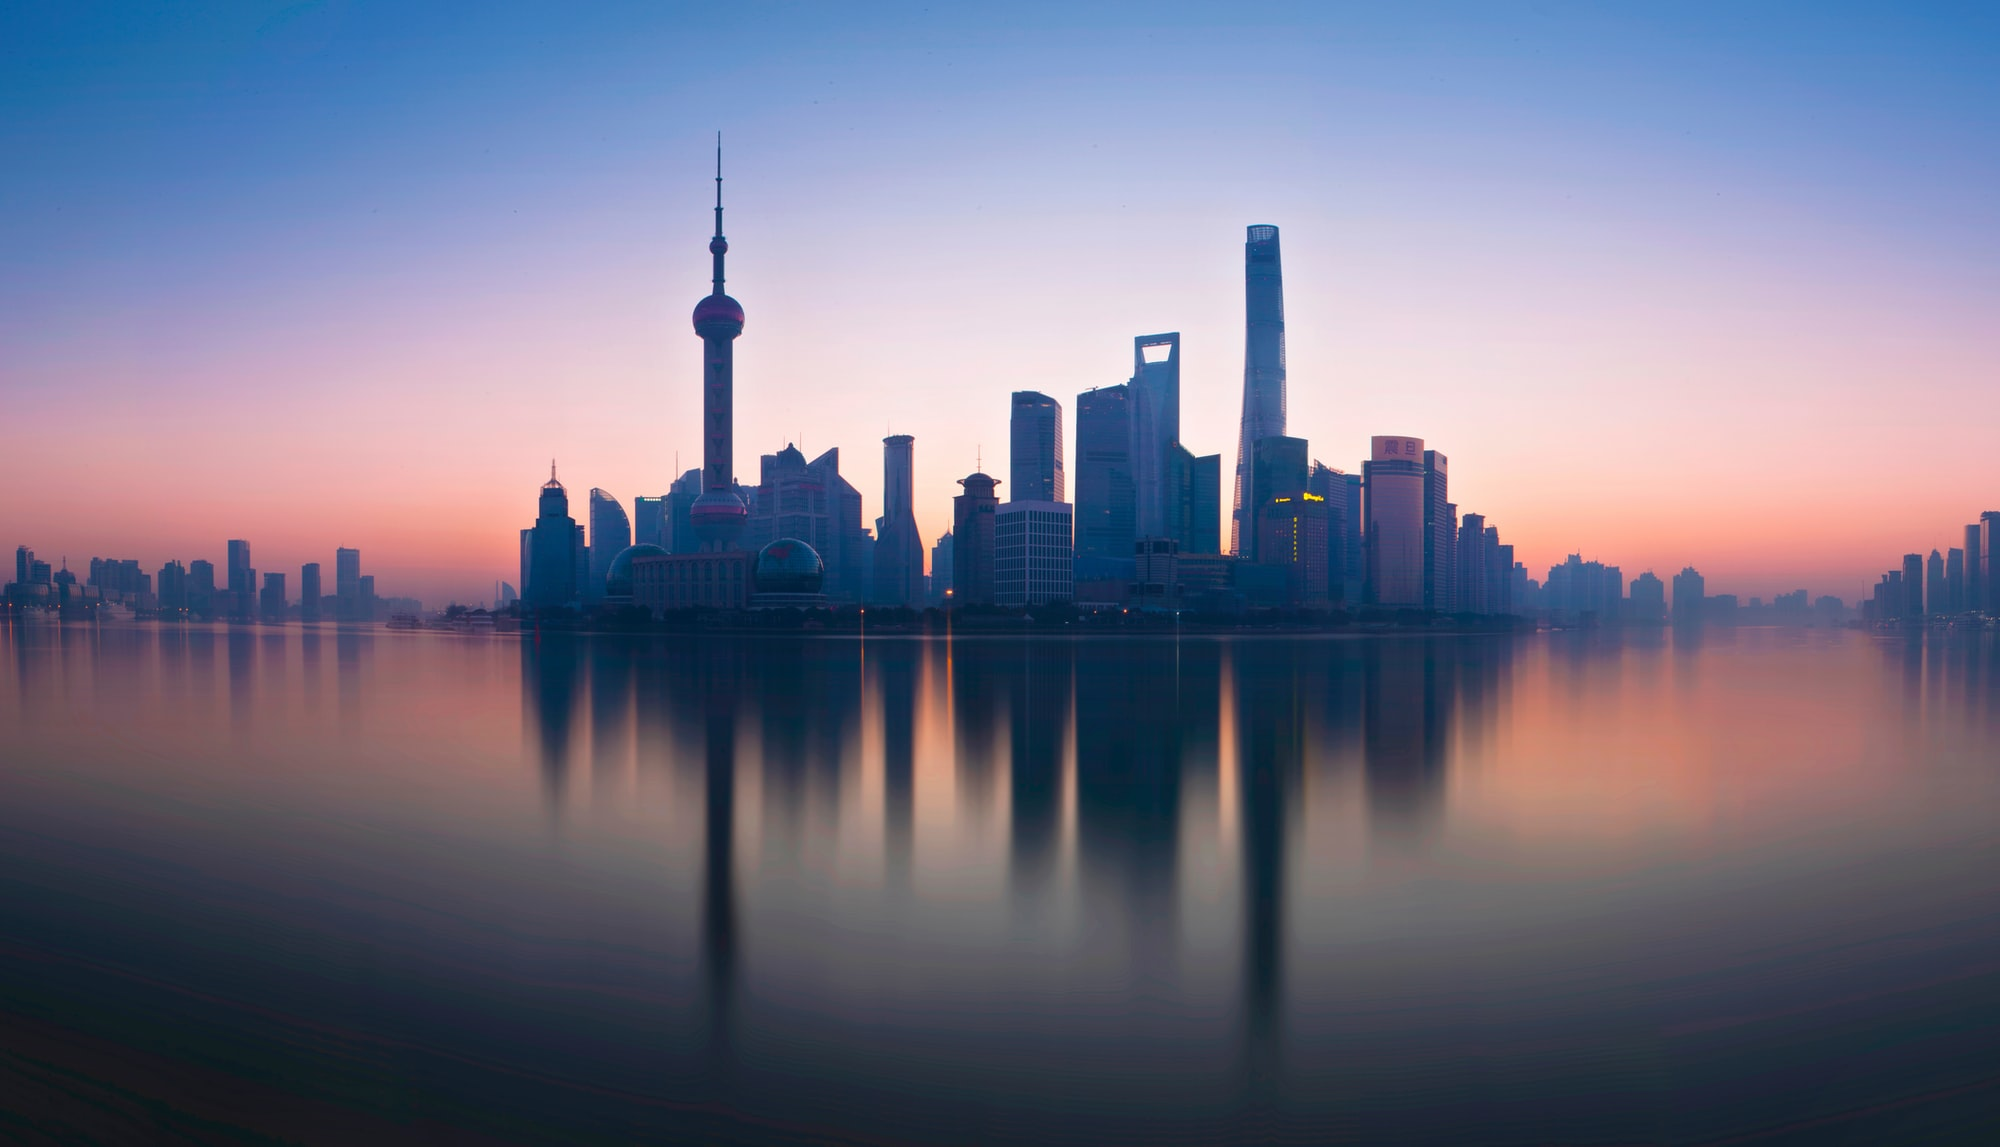 The view of lujiazui from the bund